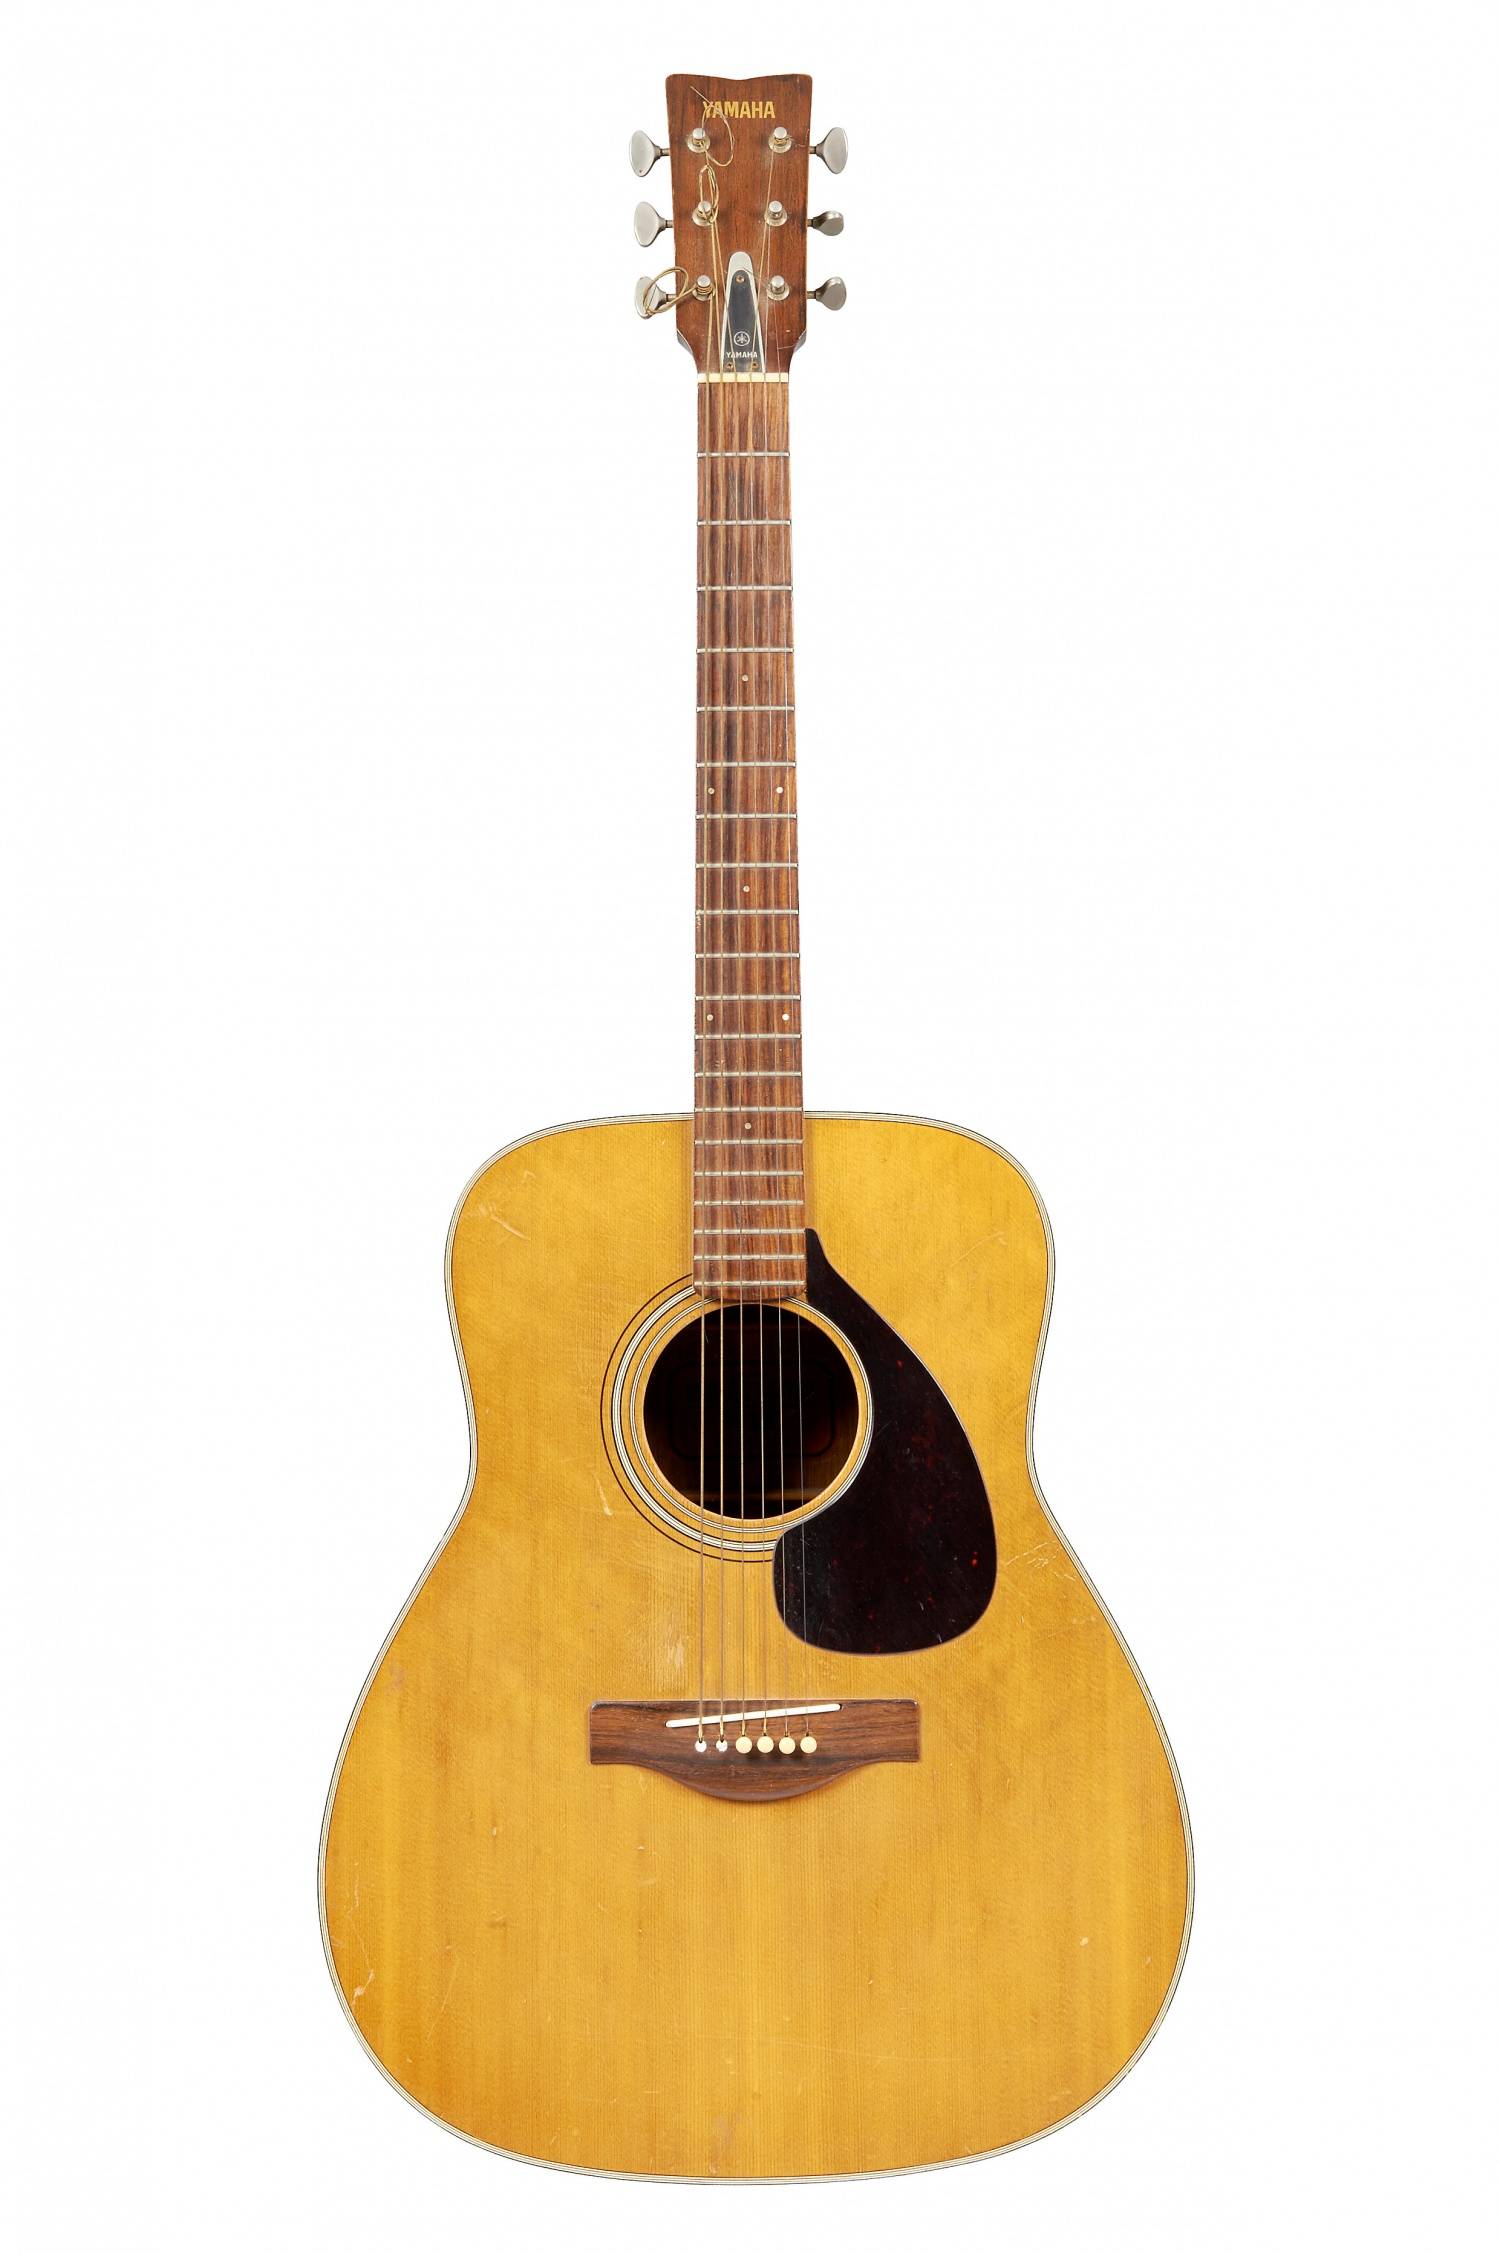 guitar by yamaha japan circa 1970 photography brompton 39 s auctioneers. Black Bedroom Furniture Sets. Home Design Ideas